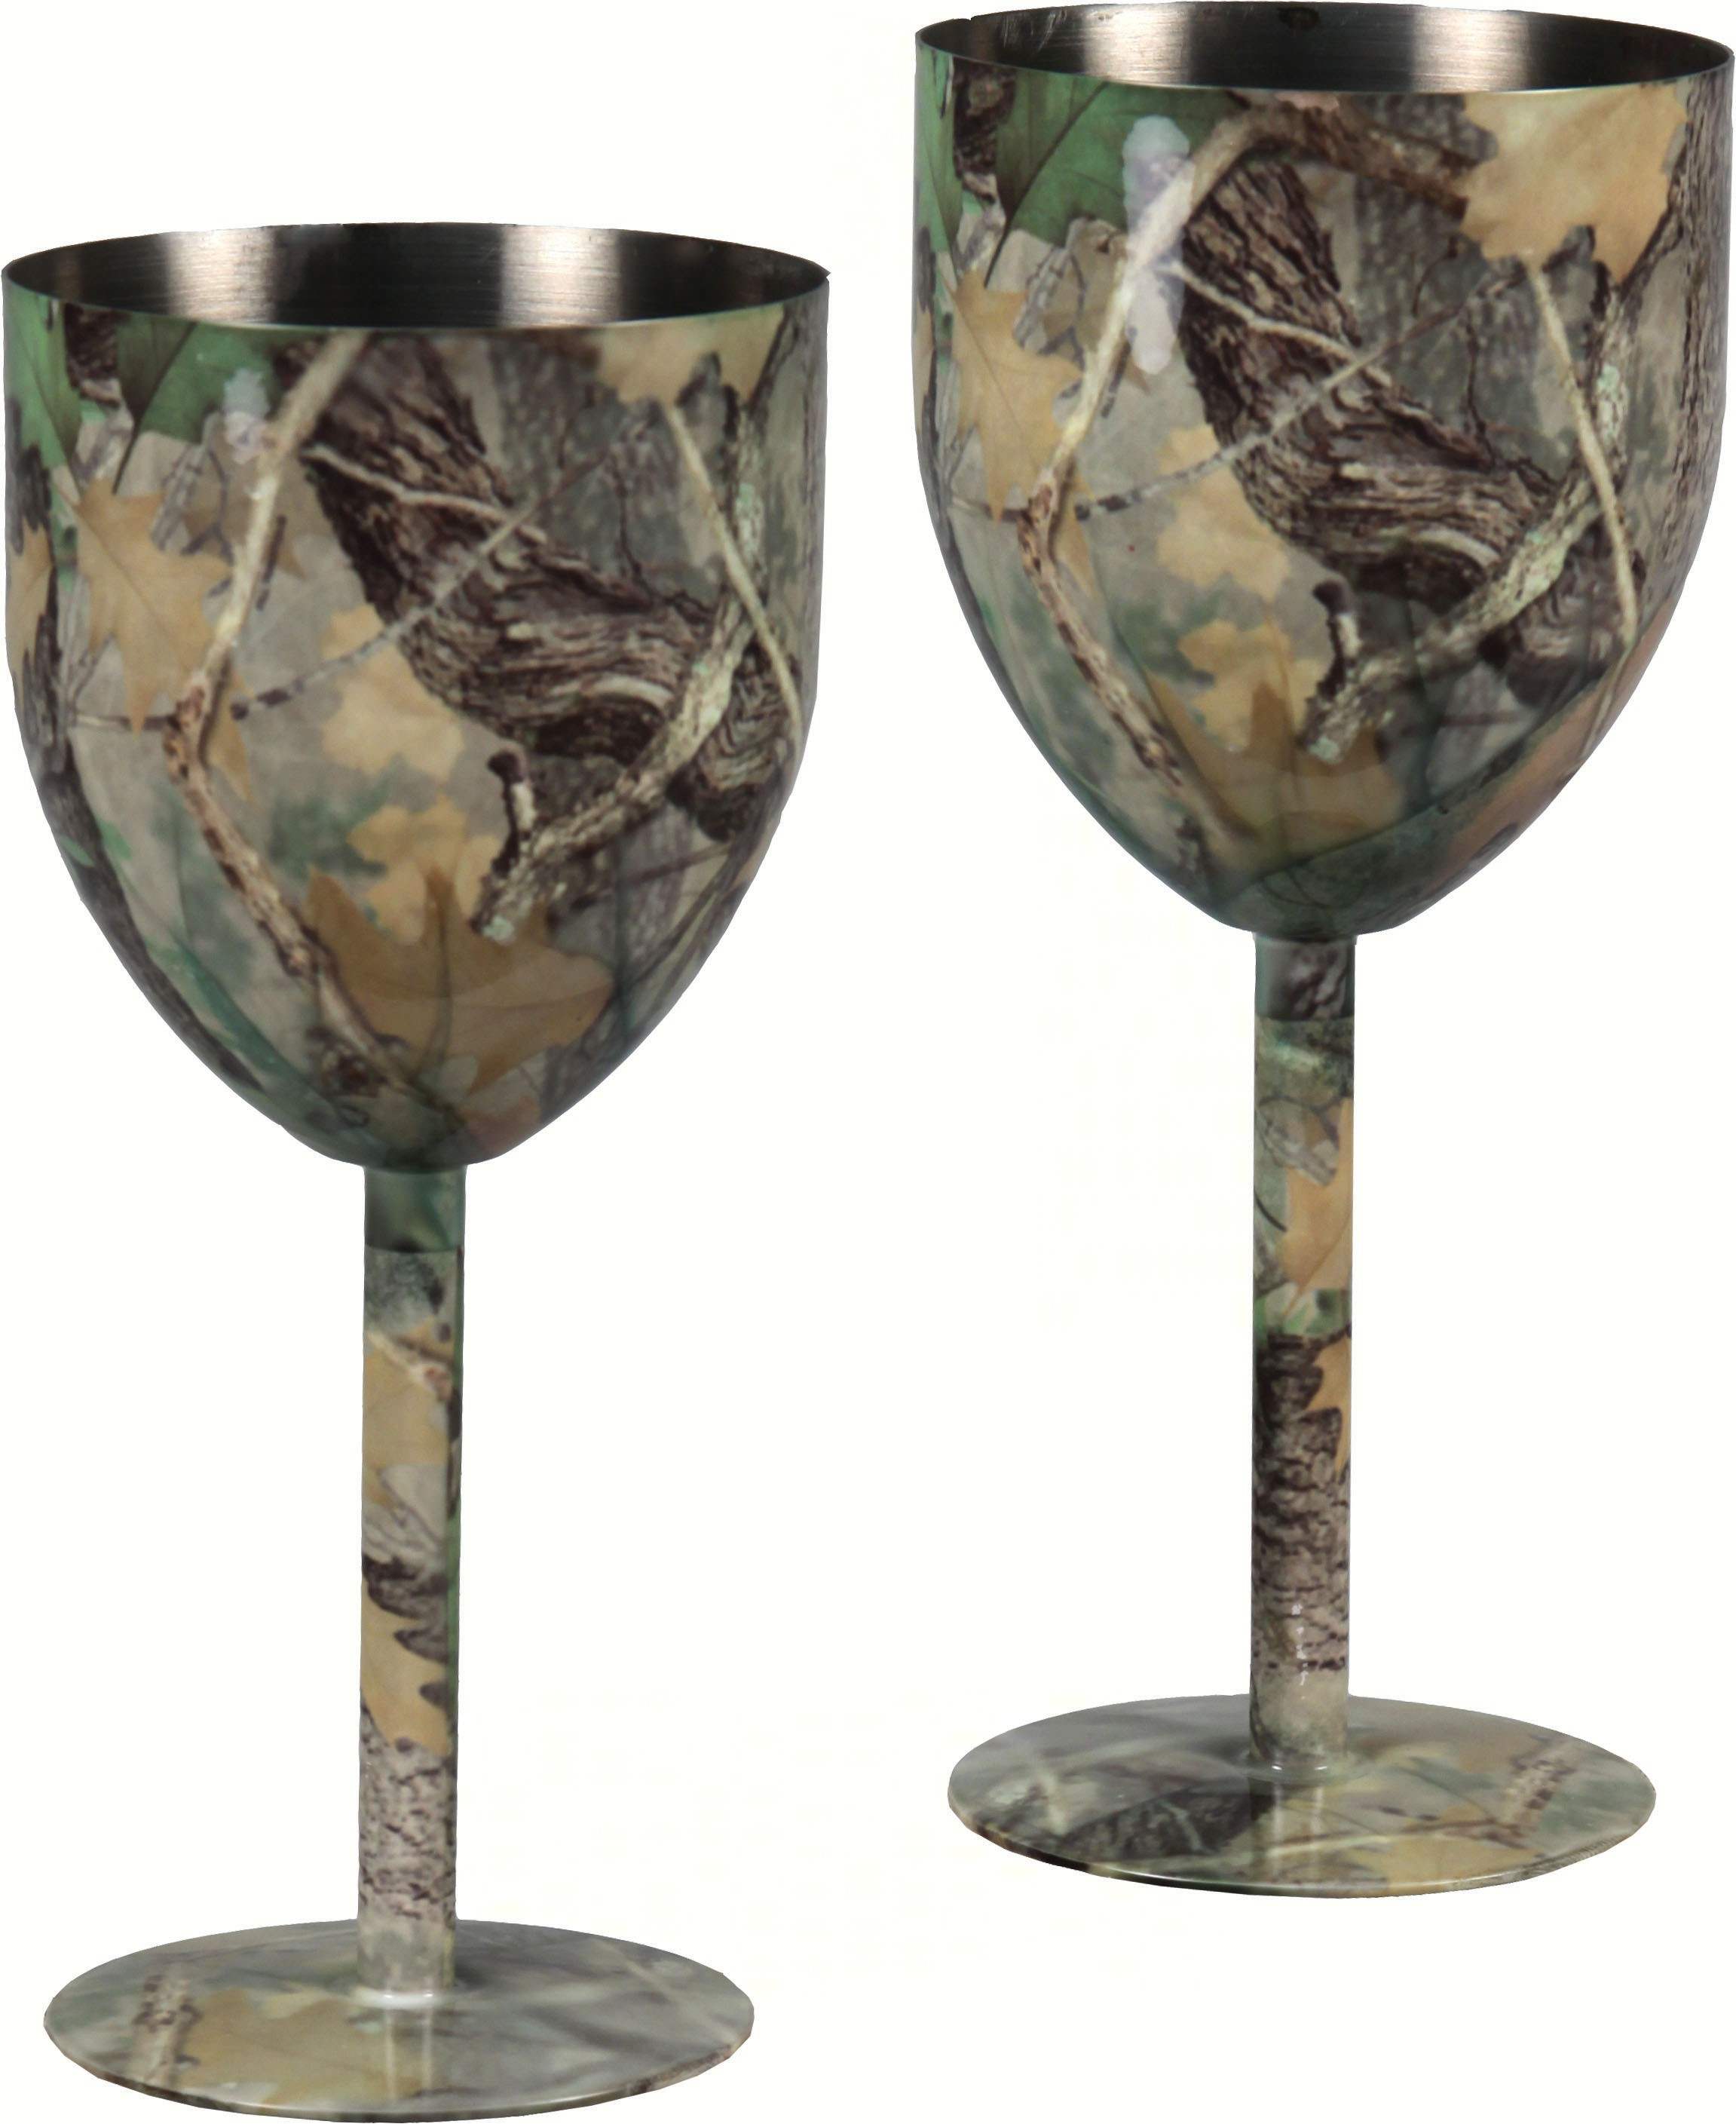 Camo Stainless Steel Wine Glass Set 2 pcs